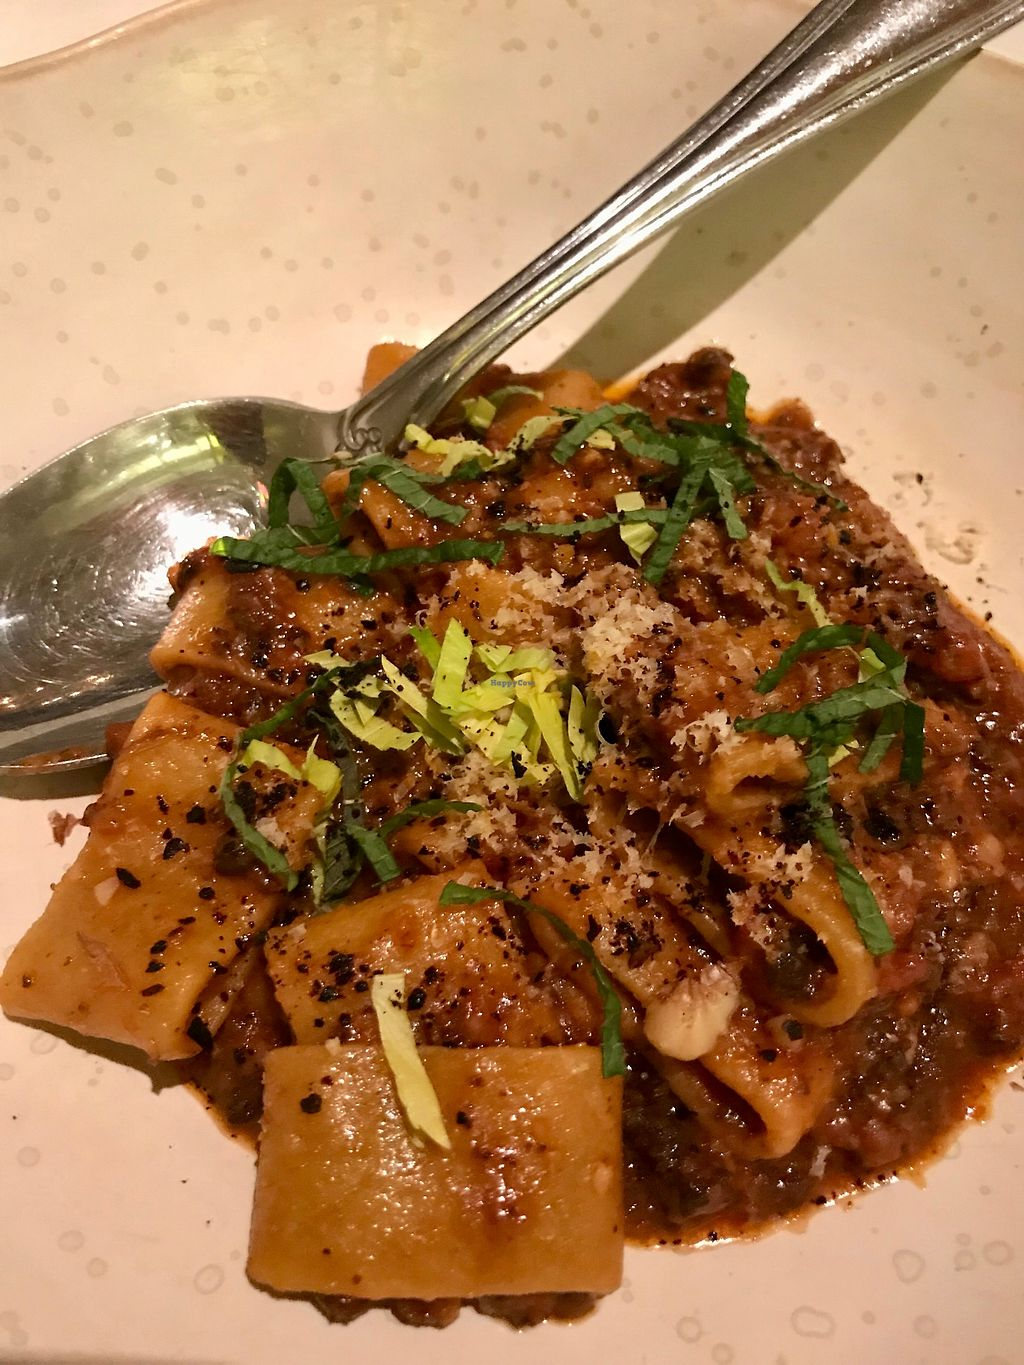 "Photo of abcV  by <a href=""/members/profile/Karenk"">Karenk</a> <br/>mushroom walnut bolognese - Wow - Amazing fresh and flavorful.  <br/> February 9, 2018  - <a href='/contact/abuse/image/93588/356866'>Report</a>"